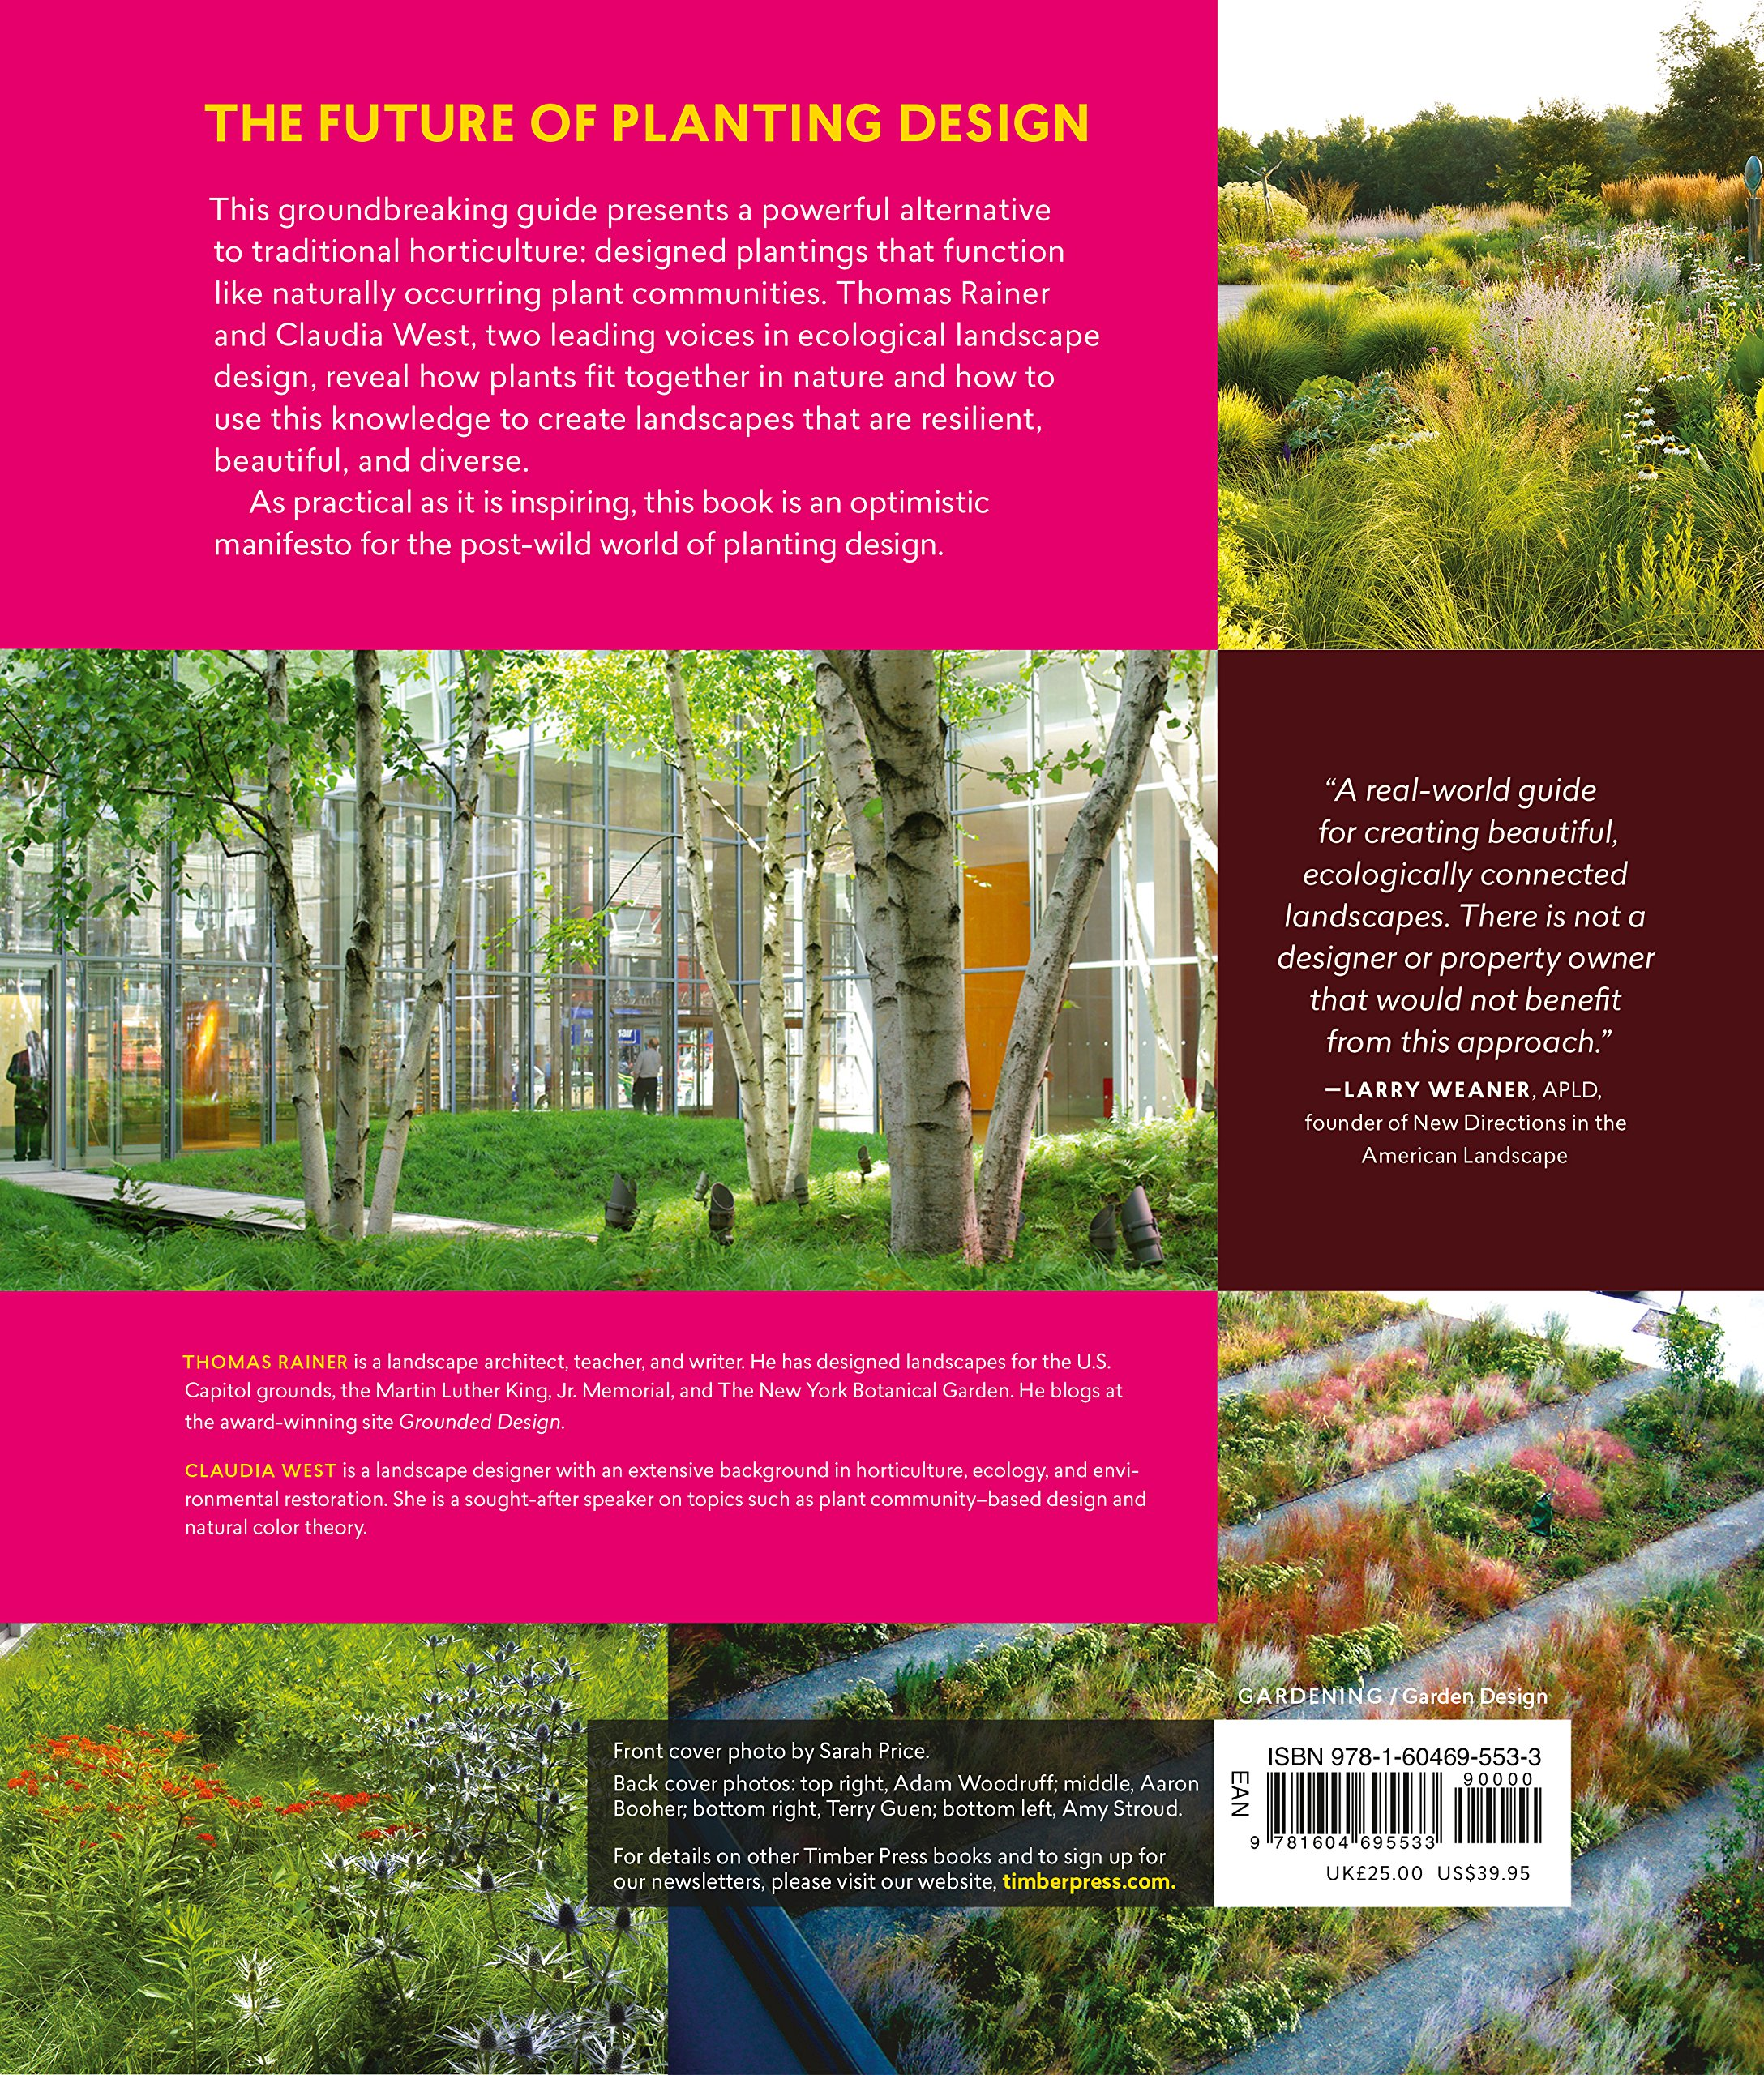 Planting In A Post Wild World: Designing Plant Communities For Resilient  Landscapes: Thomas Rainer, Claudia West: 9781604695533: Amazon.com: Books